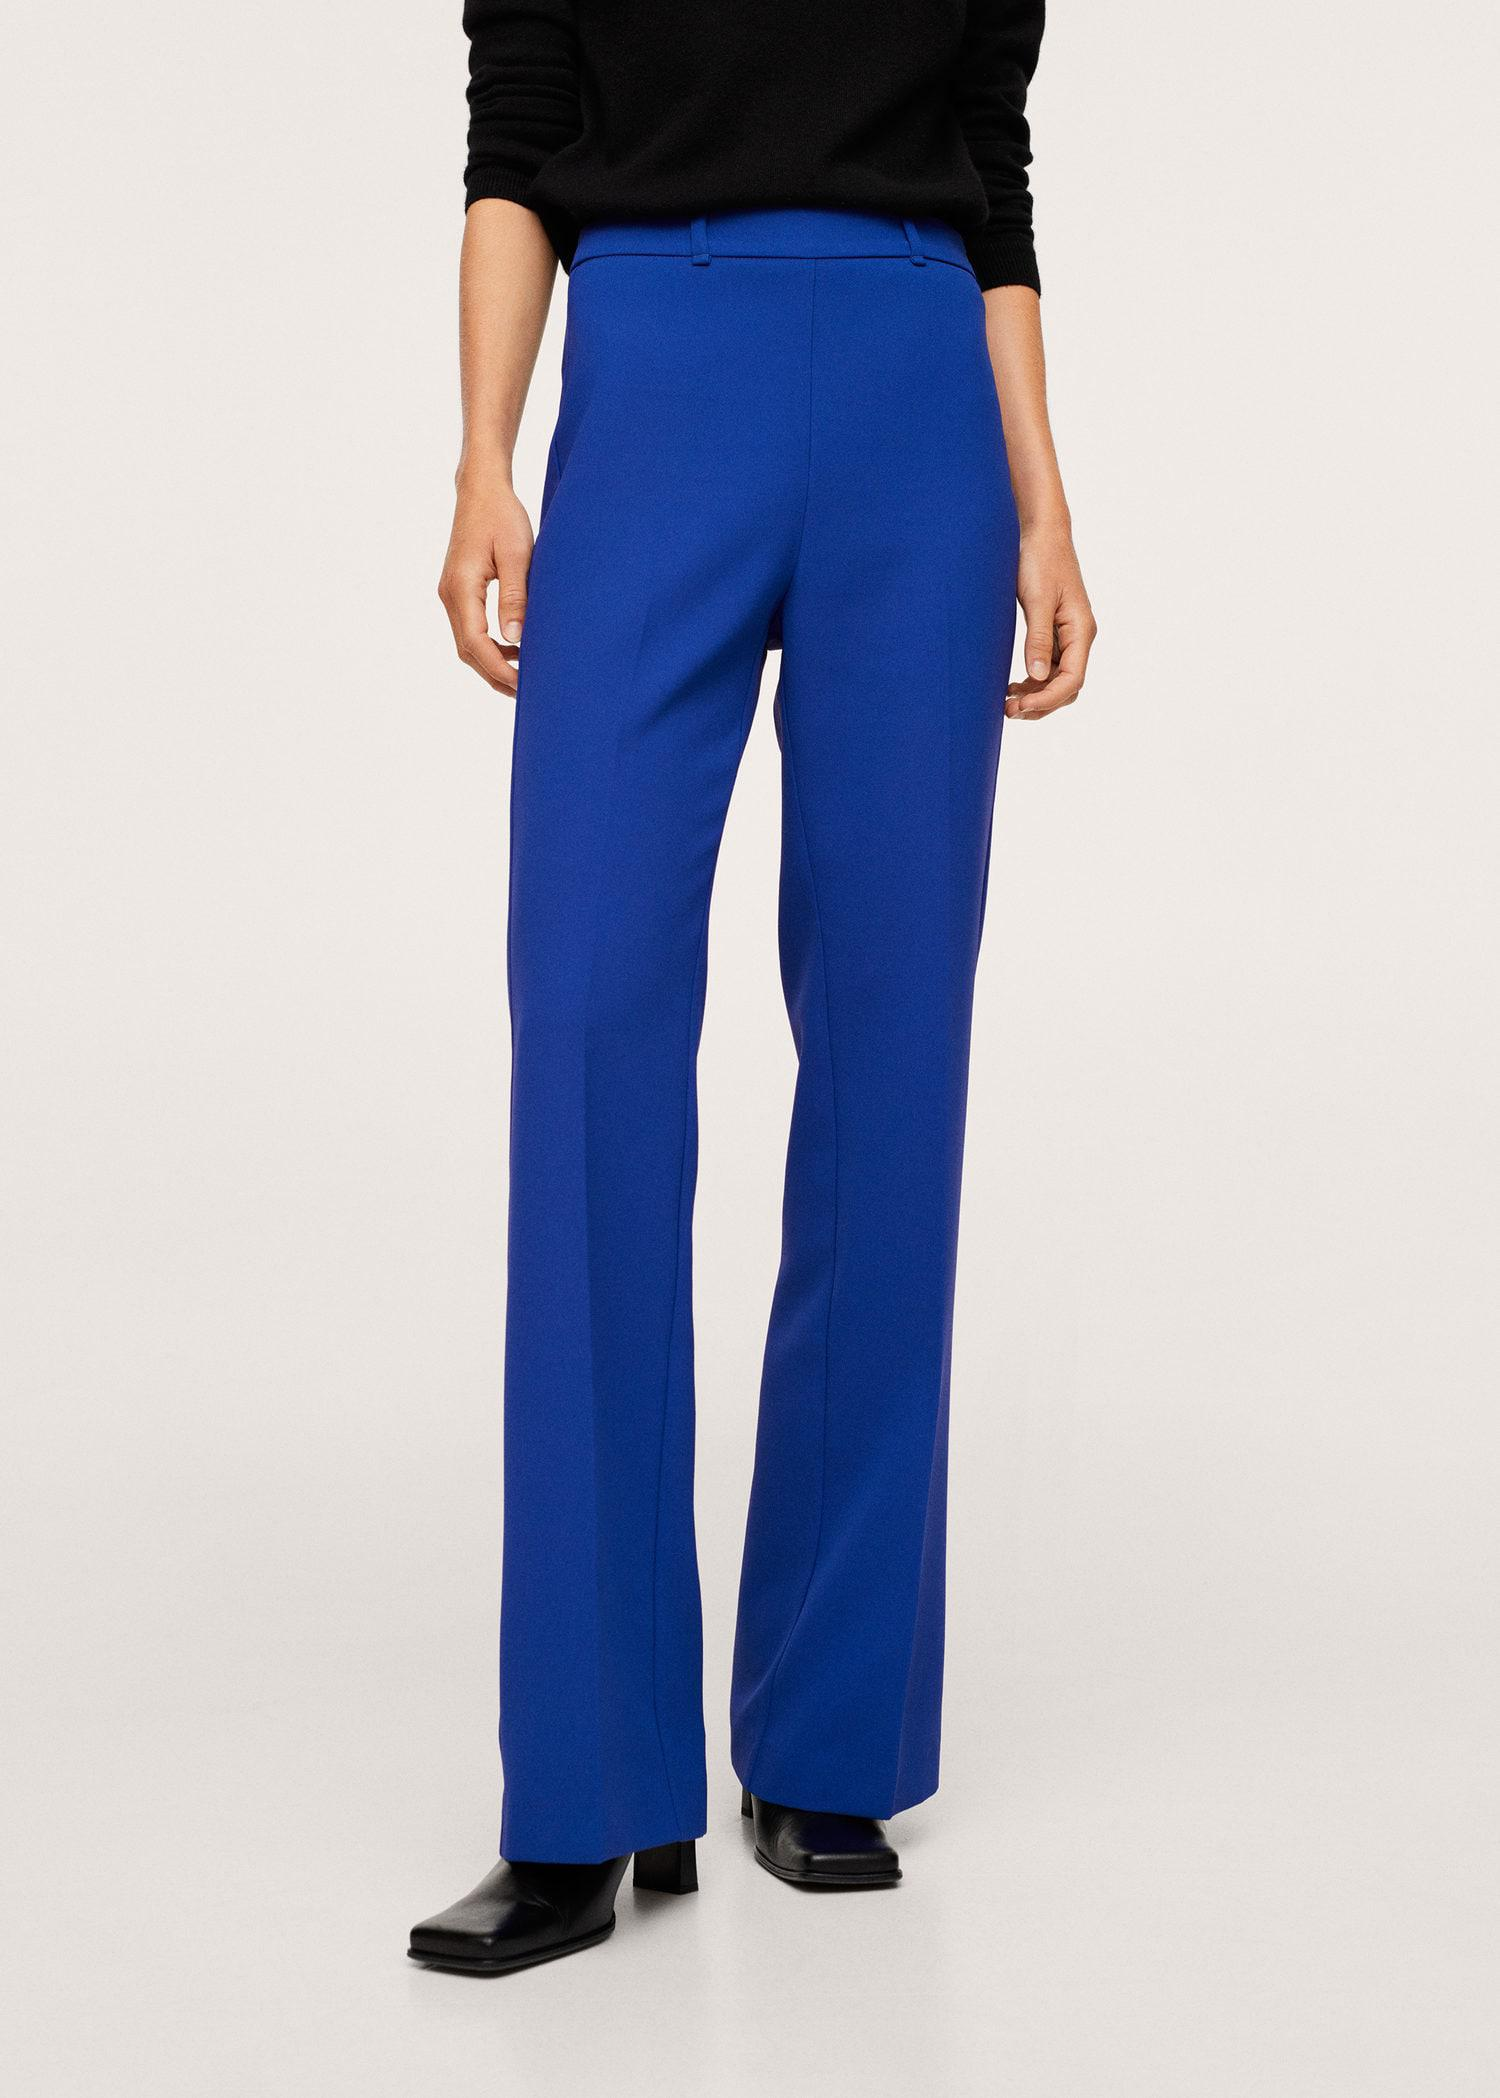 Pleat flare trousers